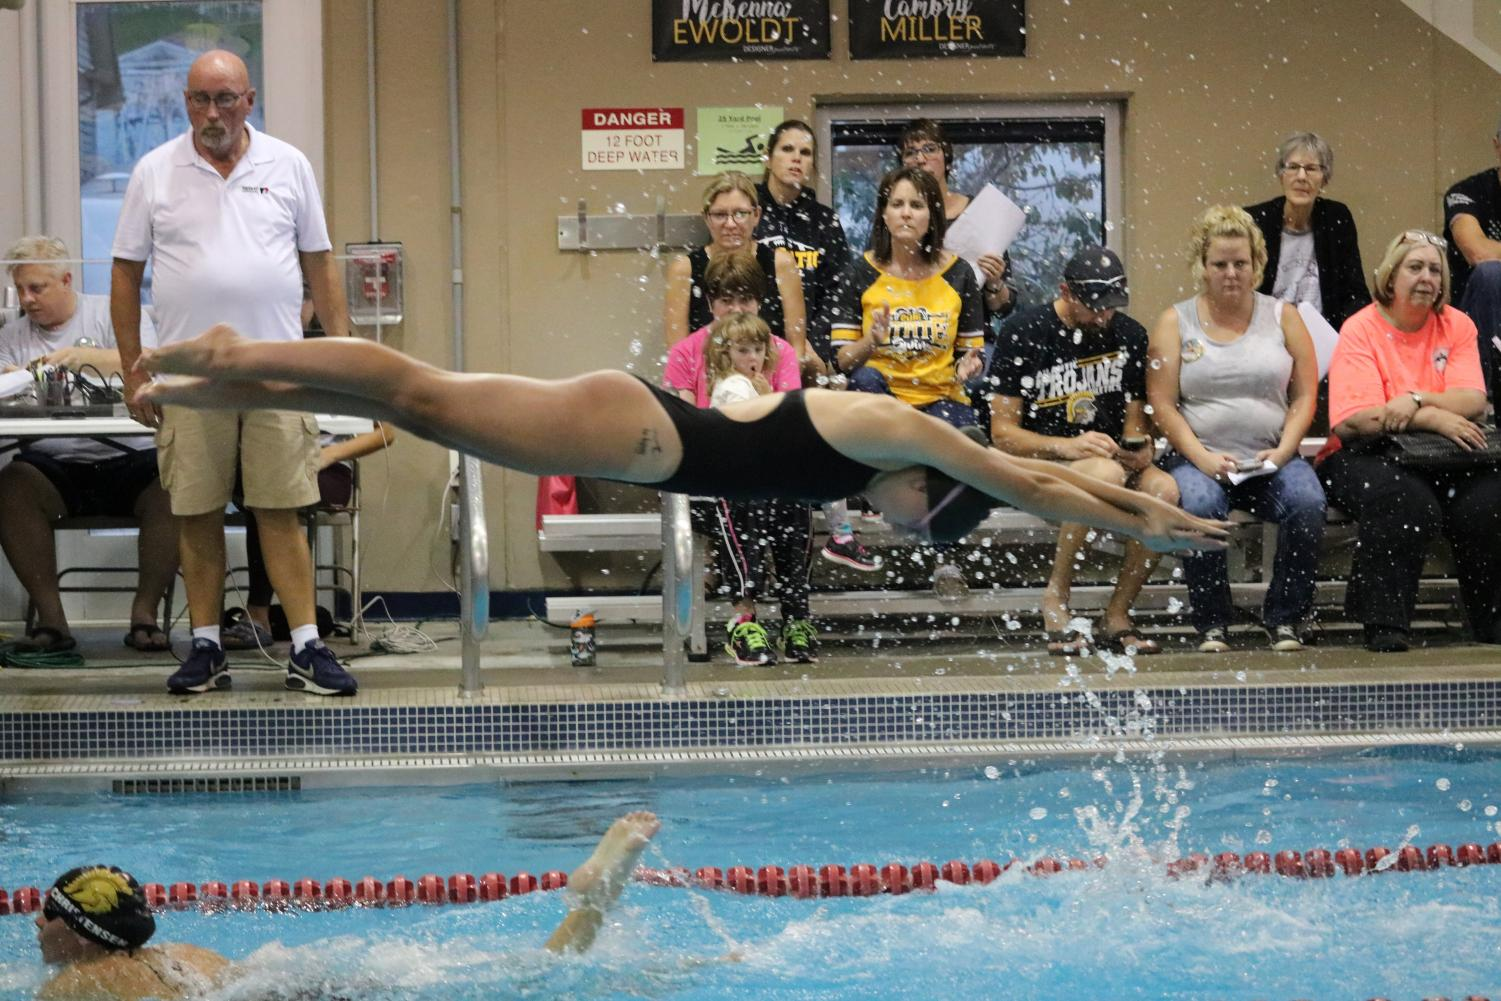 FLYING HIGH -Senior Cambry Miller jumps from the block to continue a relay.  Miller has swum all four years of high school and is one of two seniors on the team.